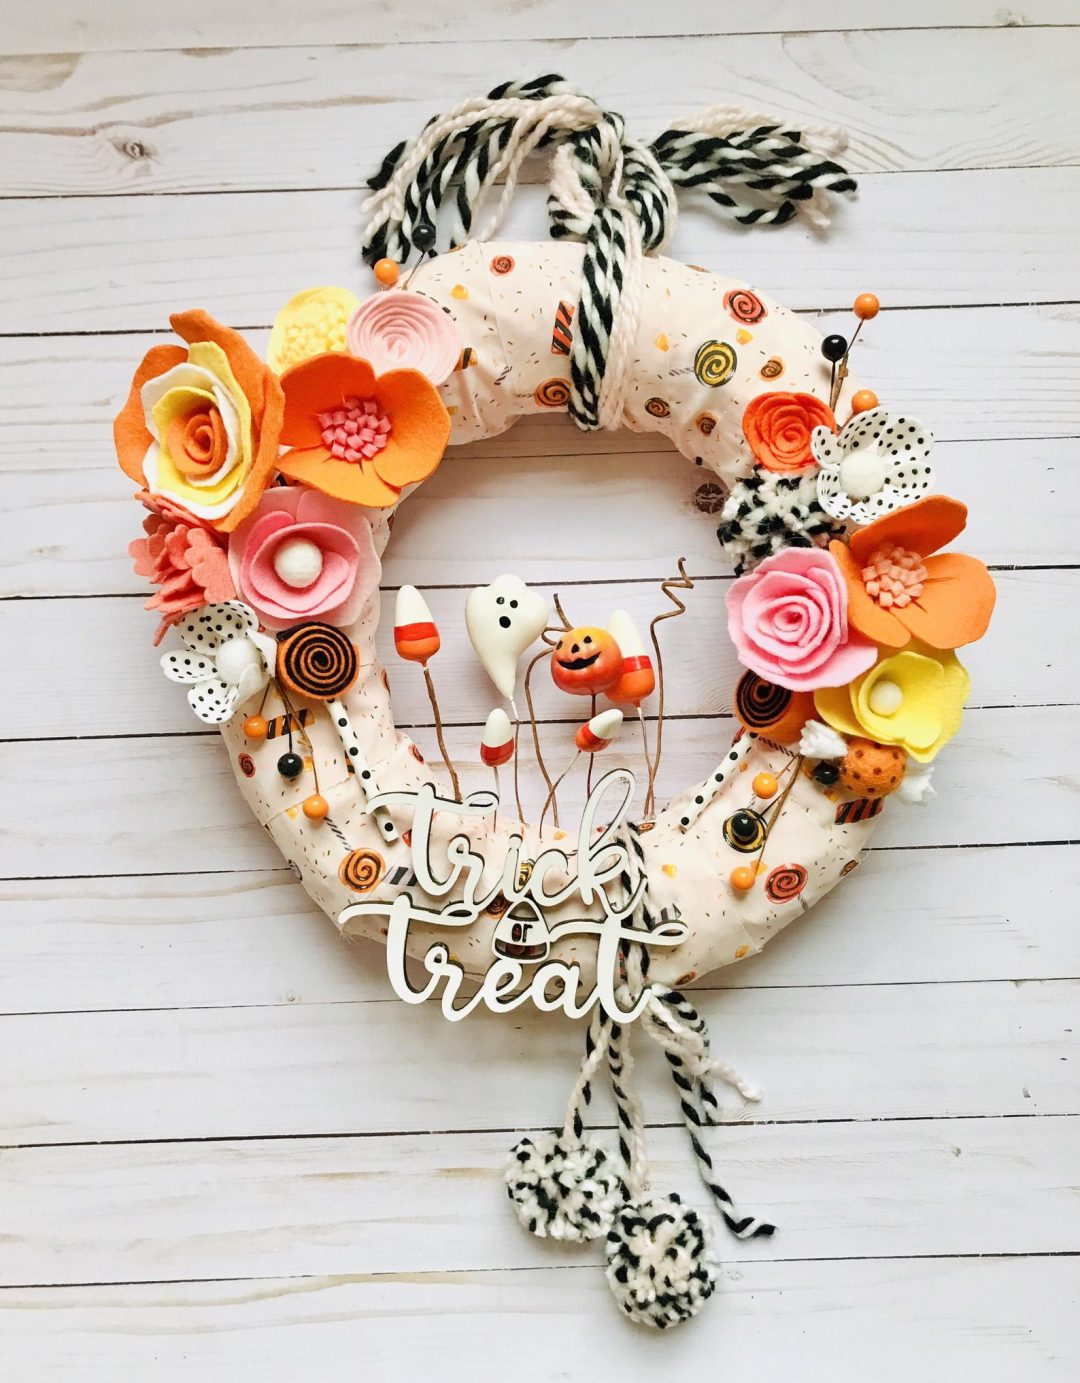 Cute Halloween wreaths with trick or treat sign